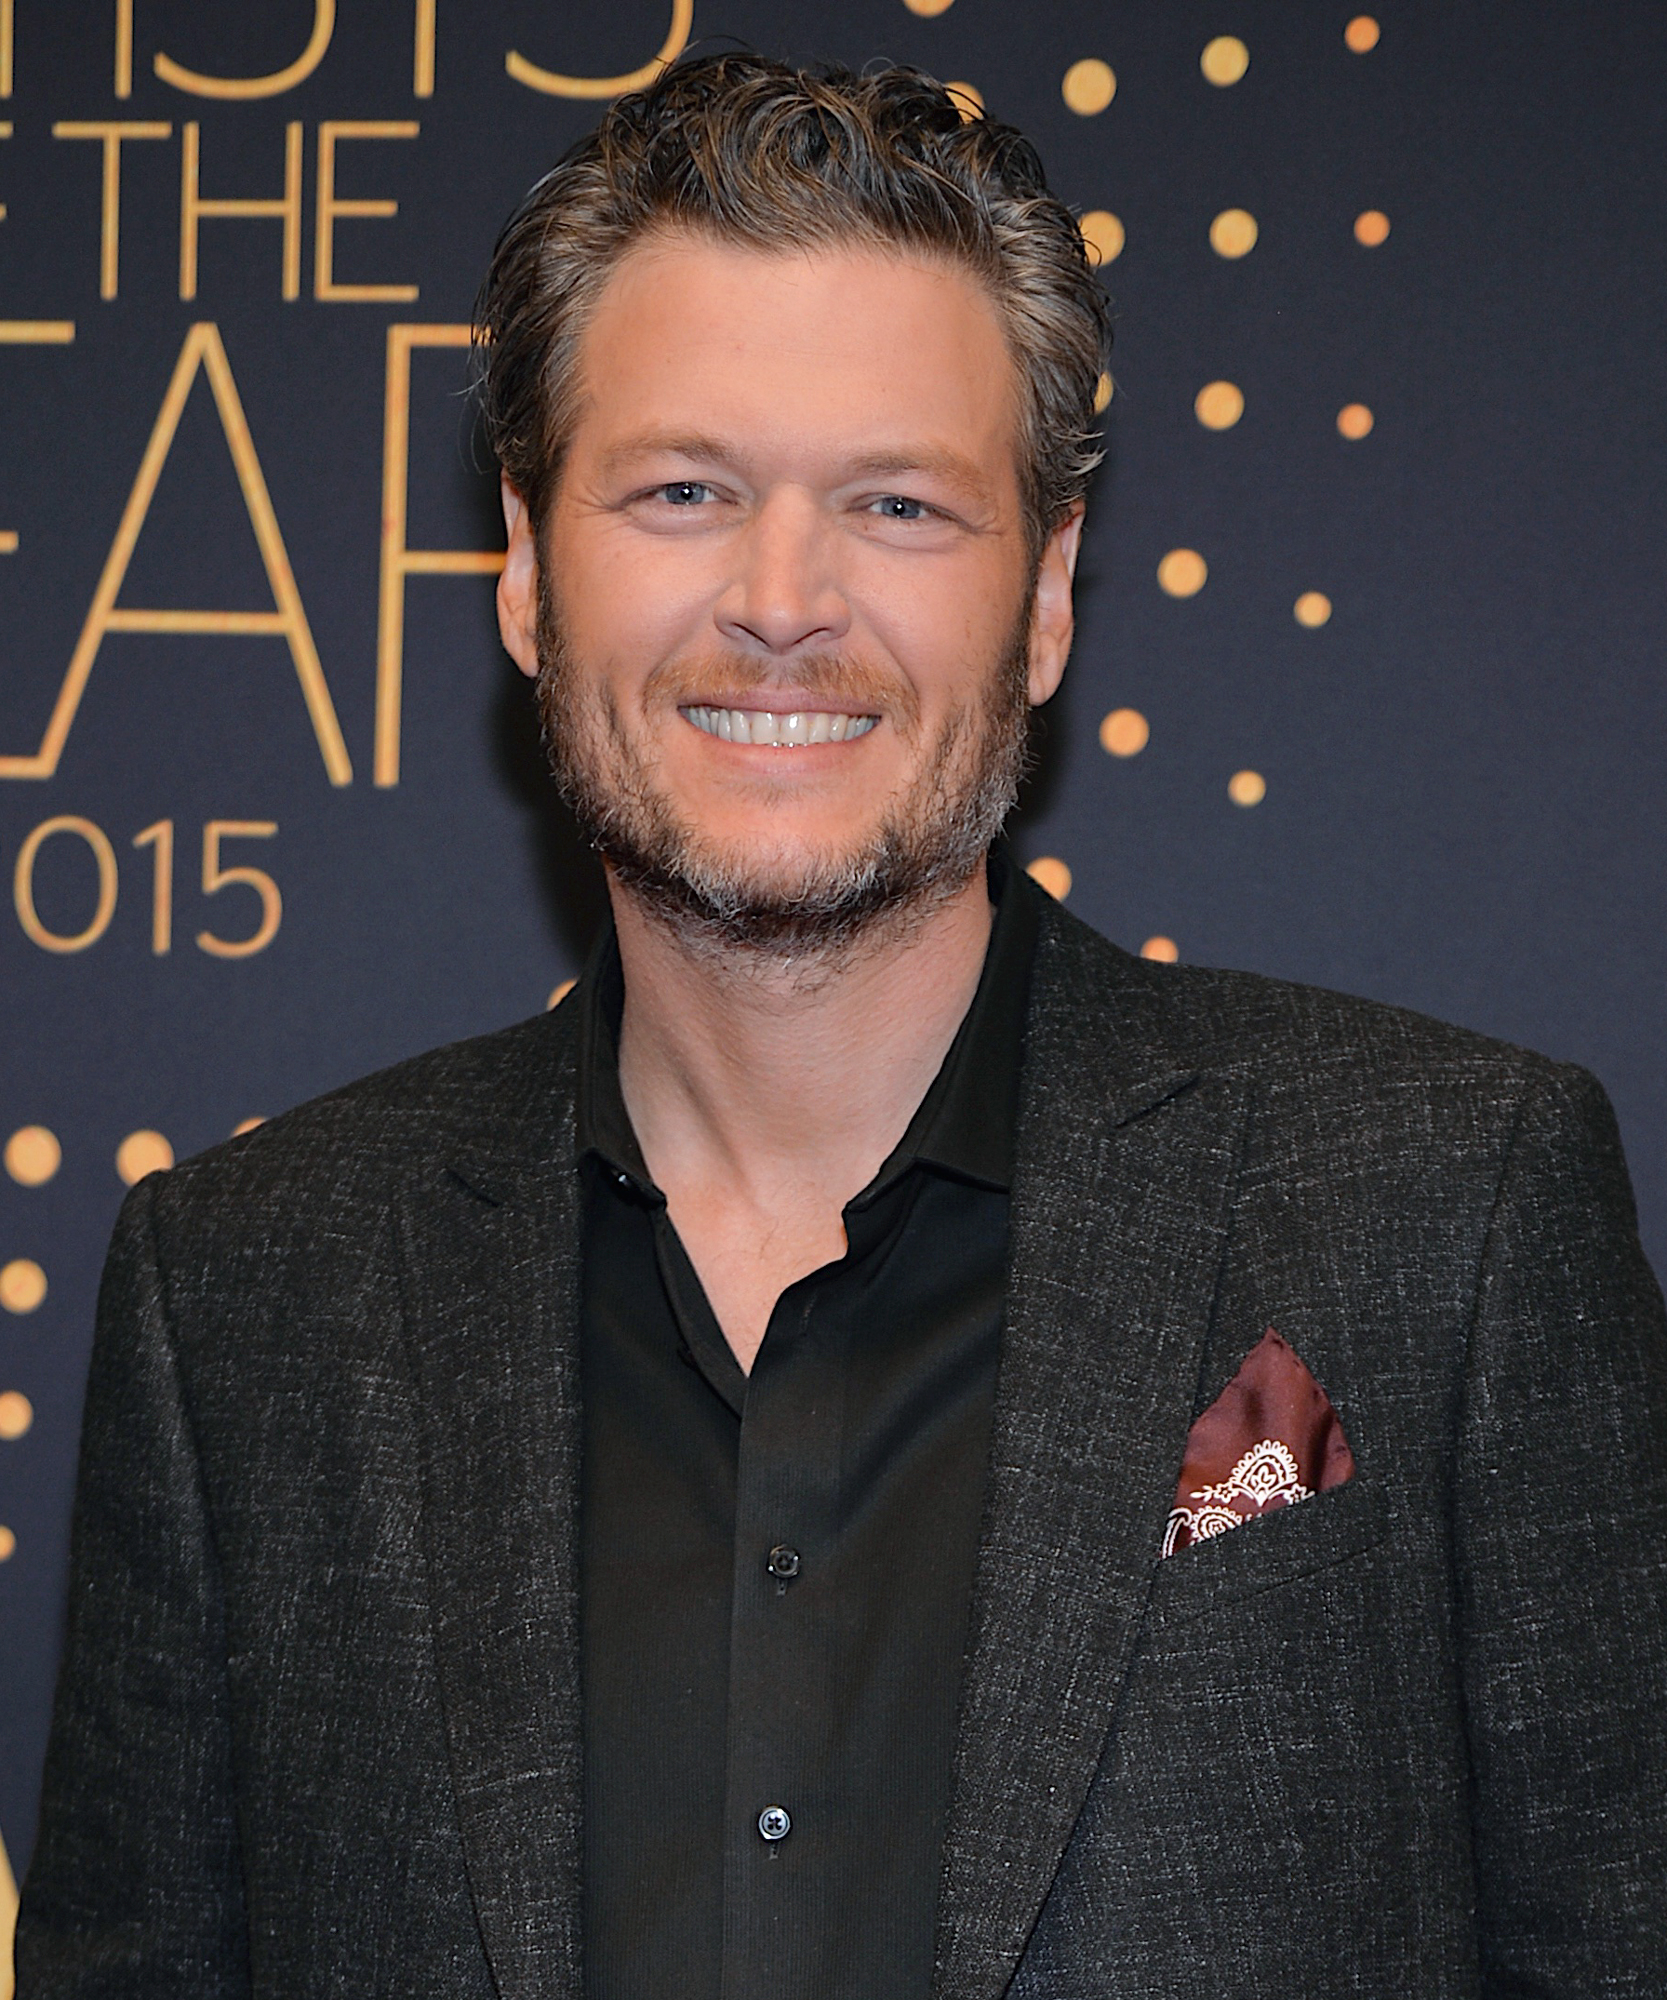 Recording Artist Blake Shelton arrives at CMT Artists of the Year 2015 at Schermerhorn Symphony Center on December 2, 2015 in Nashville, Tennessee.